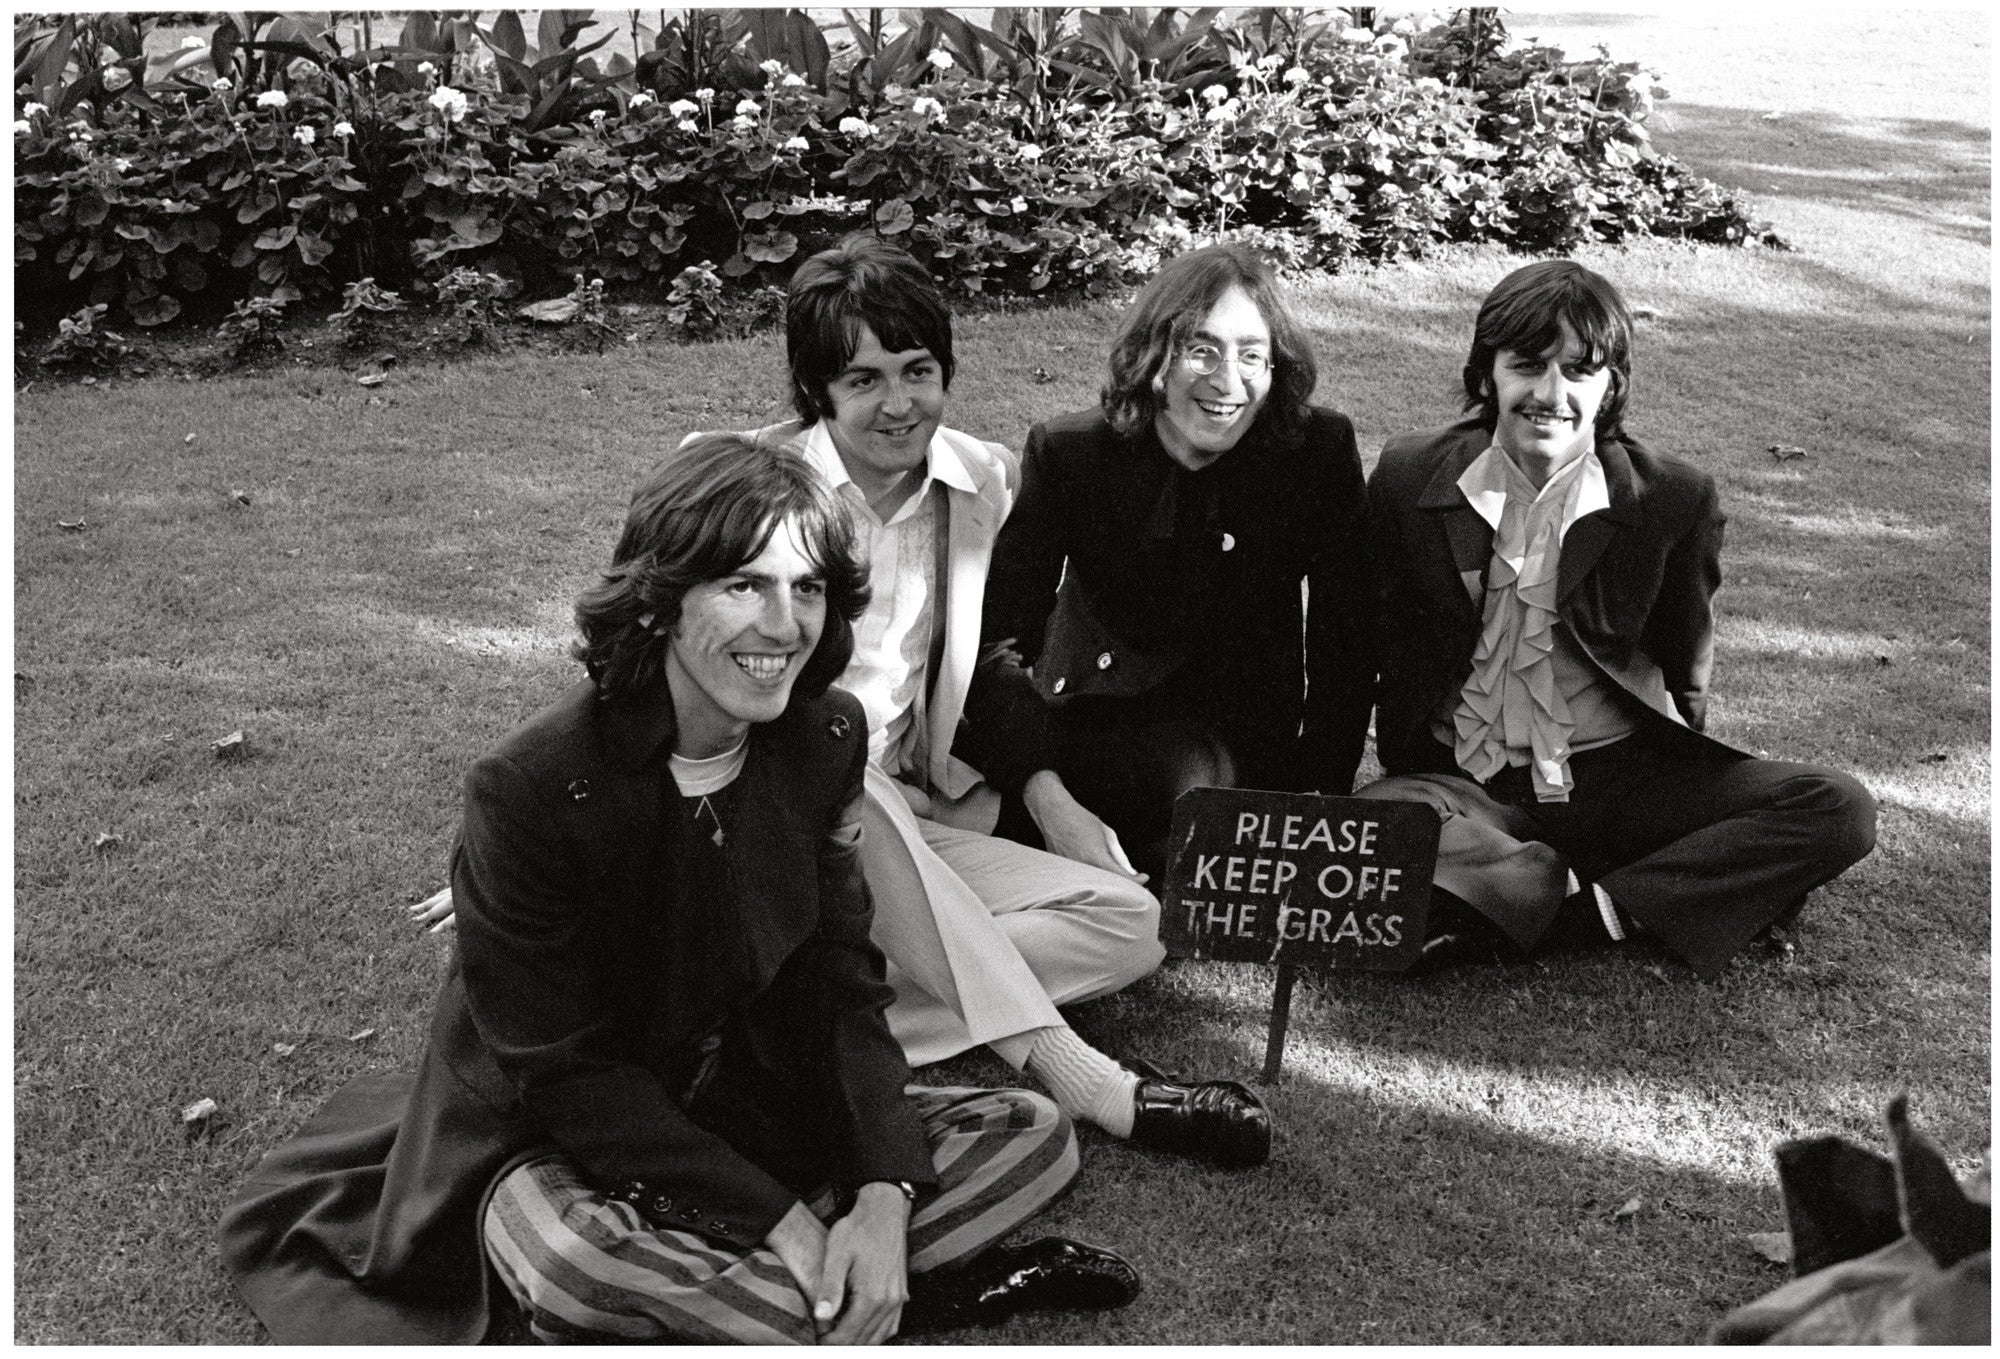 The Beatles' White Album: Five myths the 50th anniversary deluxe